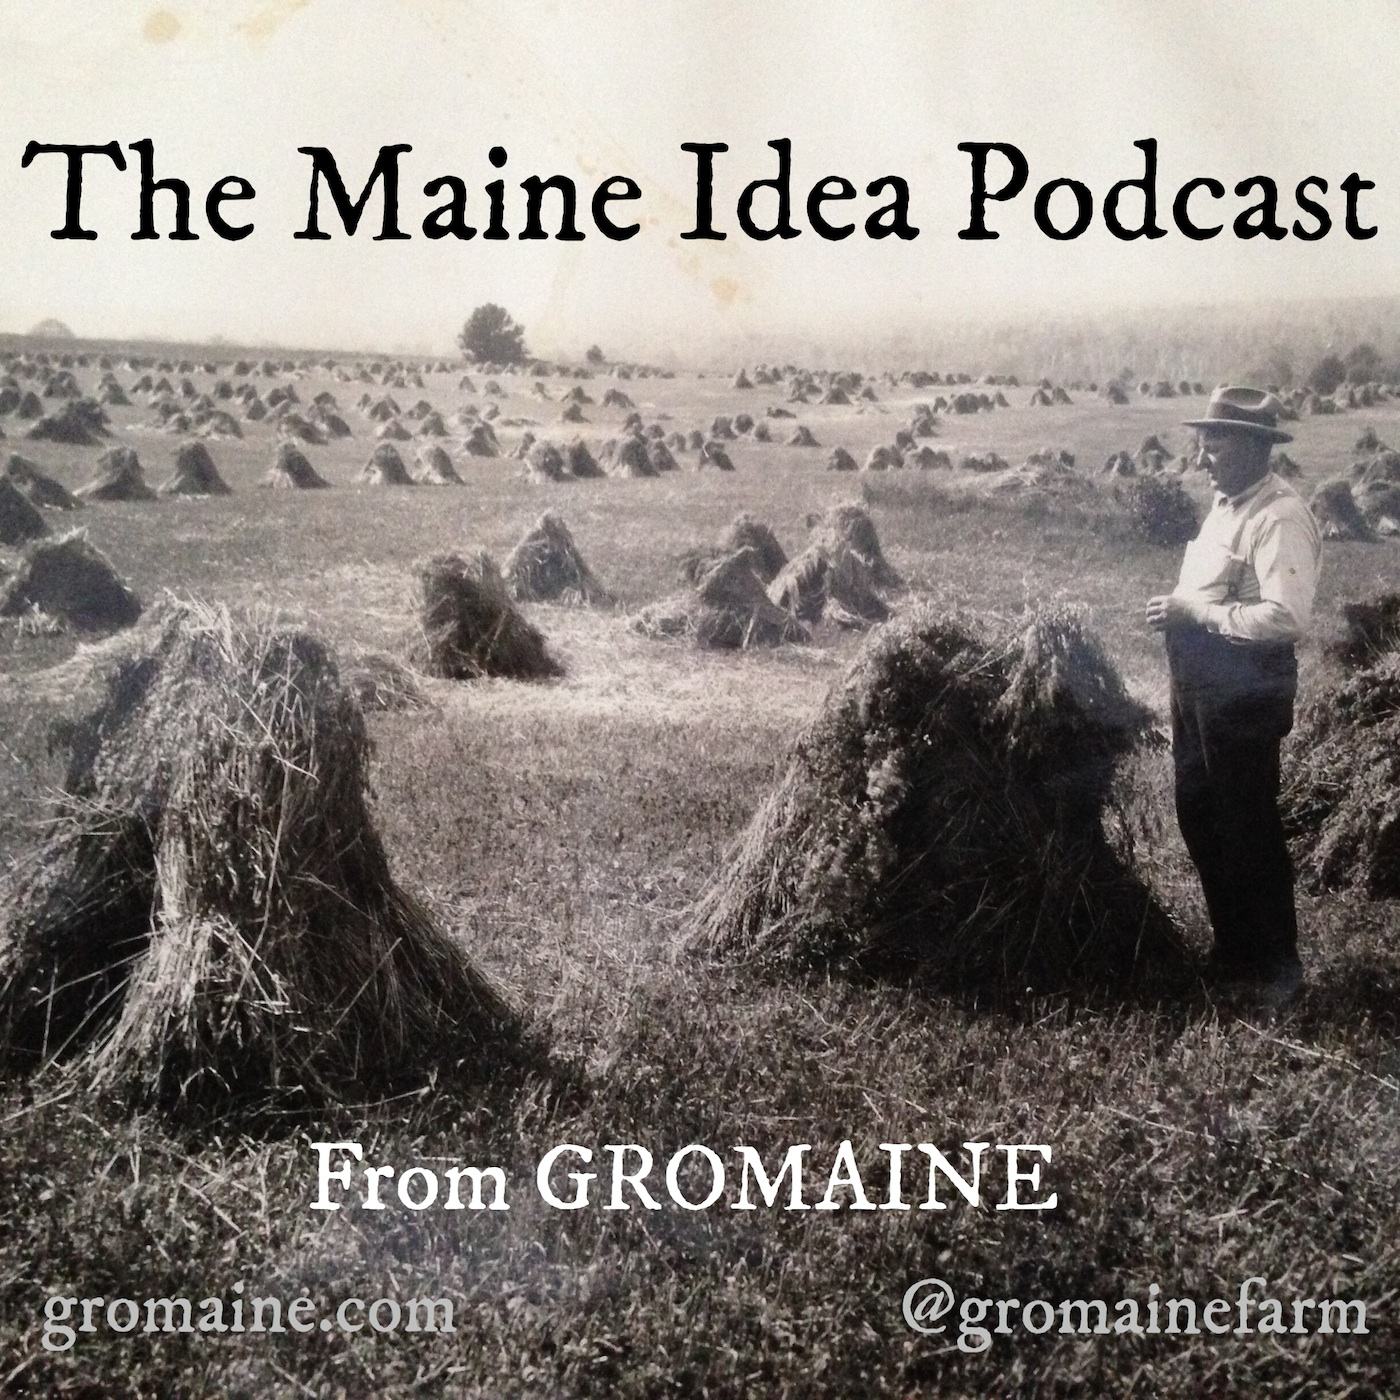 The Maine Idea Podcast